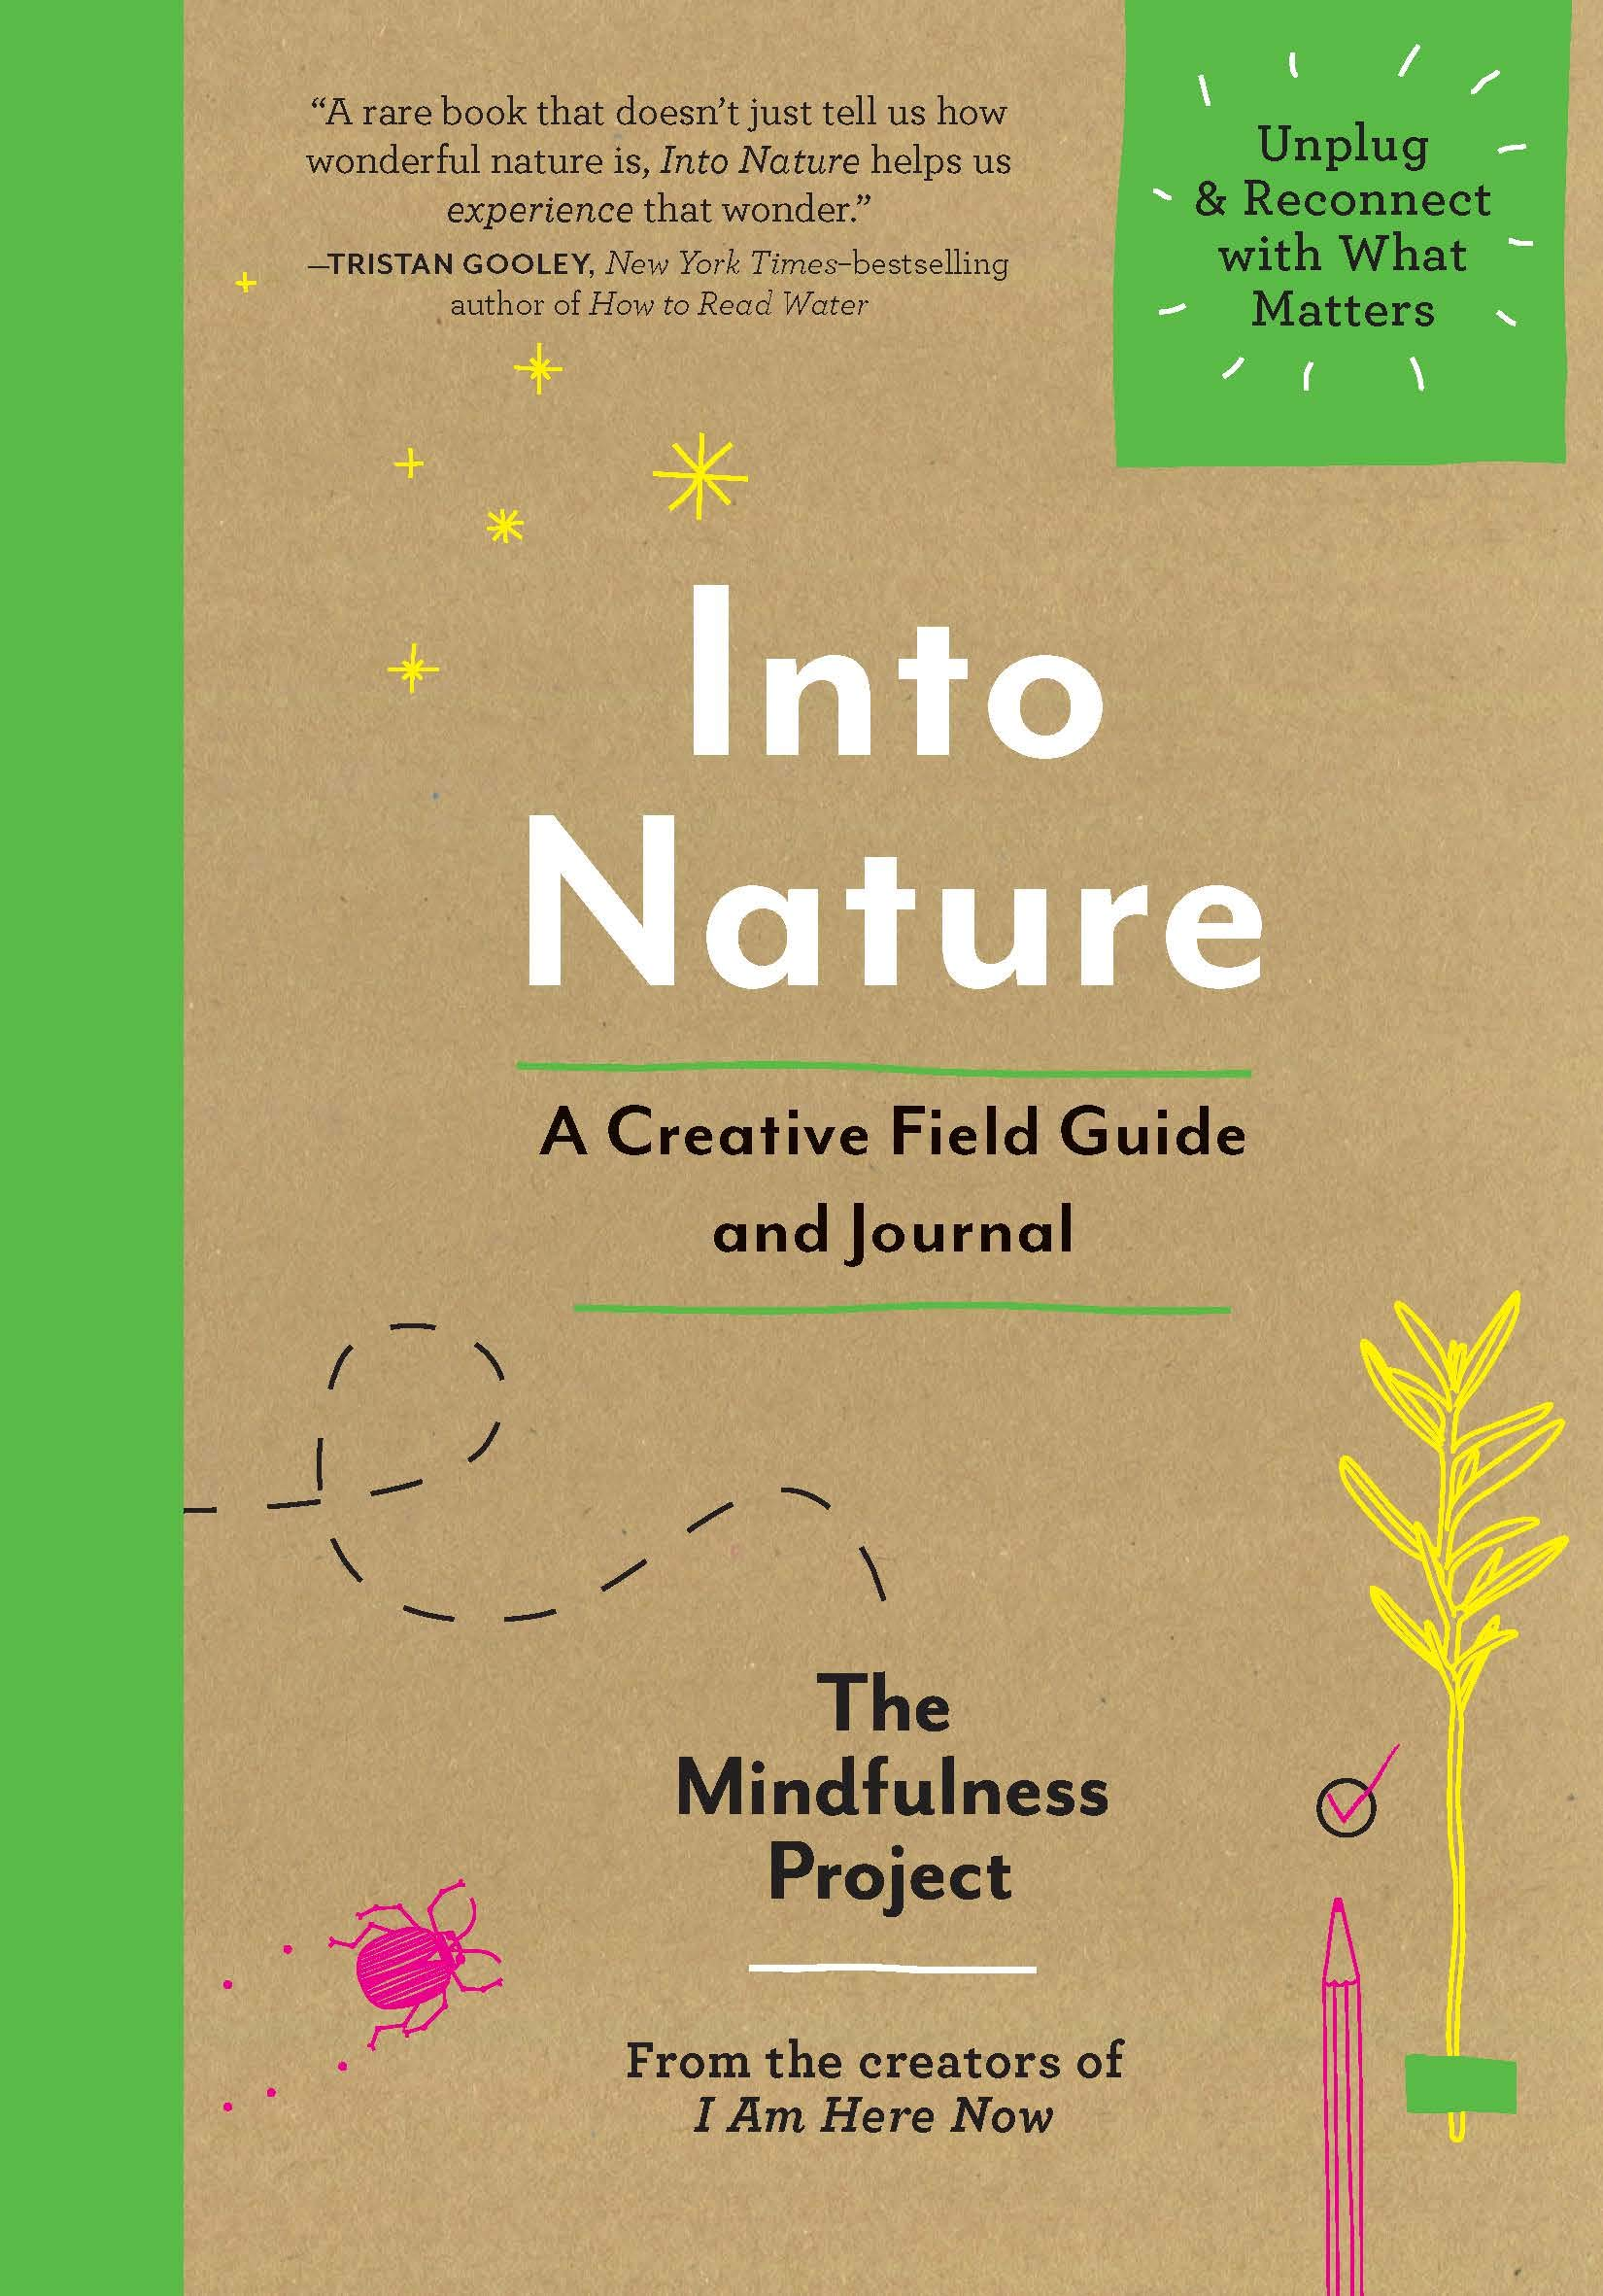 Into Nature A Creative Field Guide And Journal Unplug Reconnect With What Matters Paperback August 21 2018